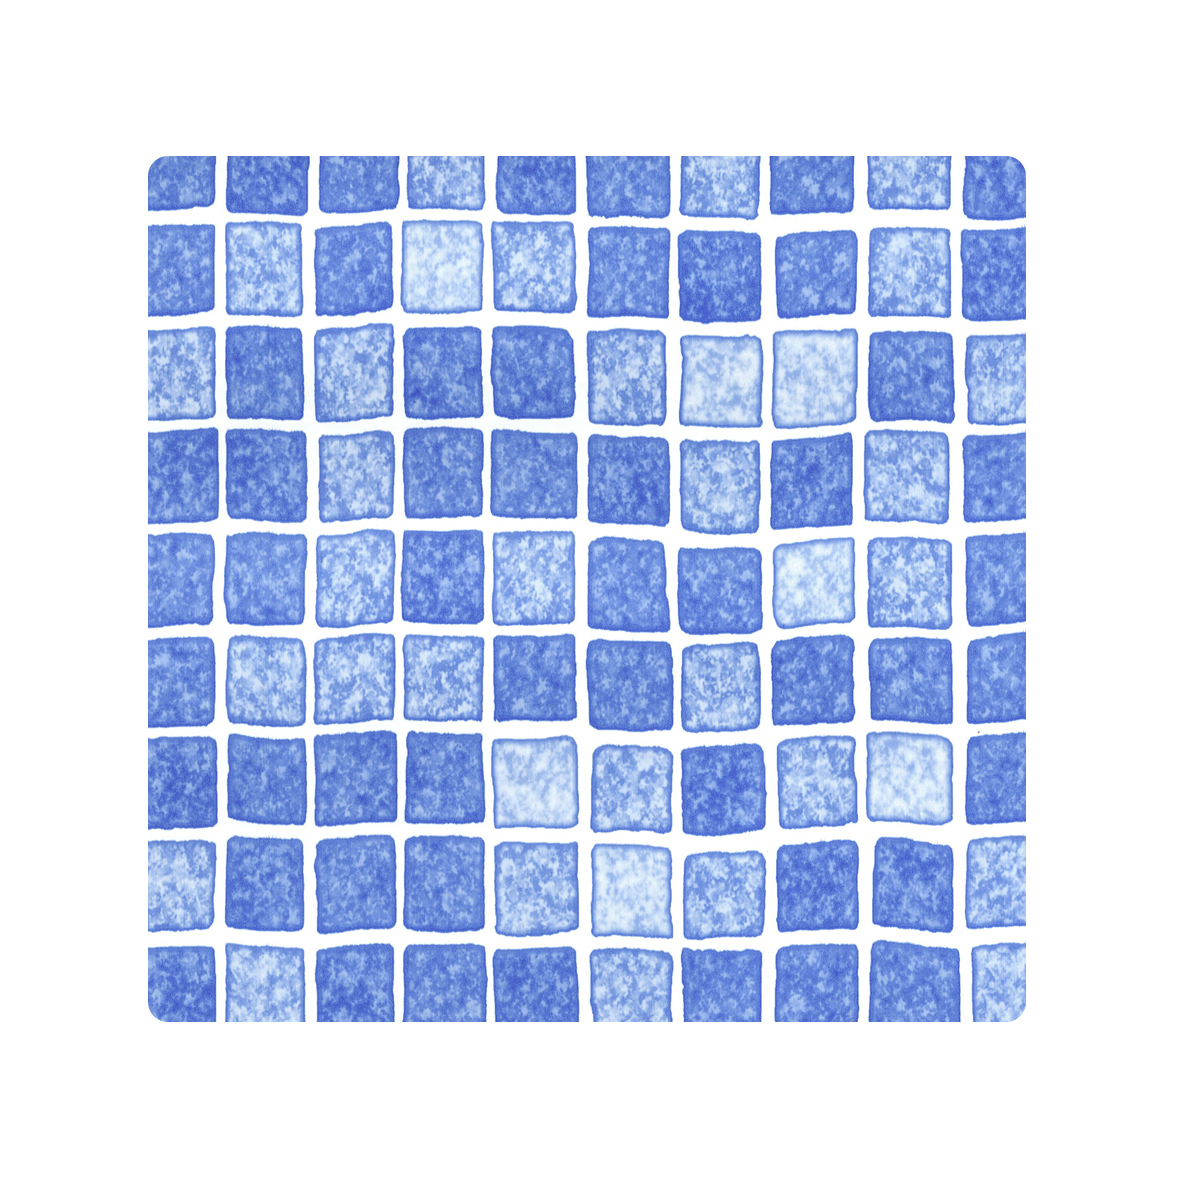 ACRYL swimming pool liner deluxe fabric reinforced PVC 165 mm MOSAIC  azure blue ACRYL swimming pool liner deluxe fabric reinforced PVC 165 mm MOSAIC  azure blue